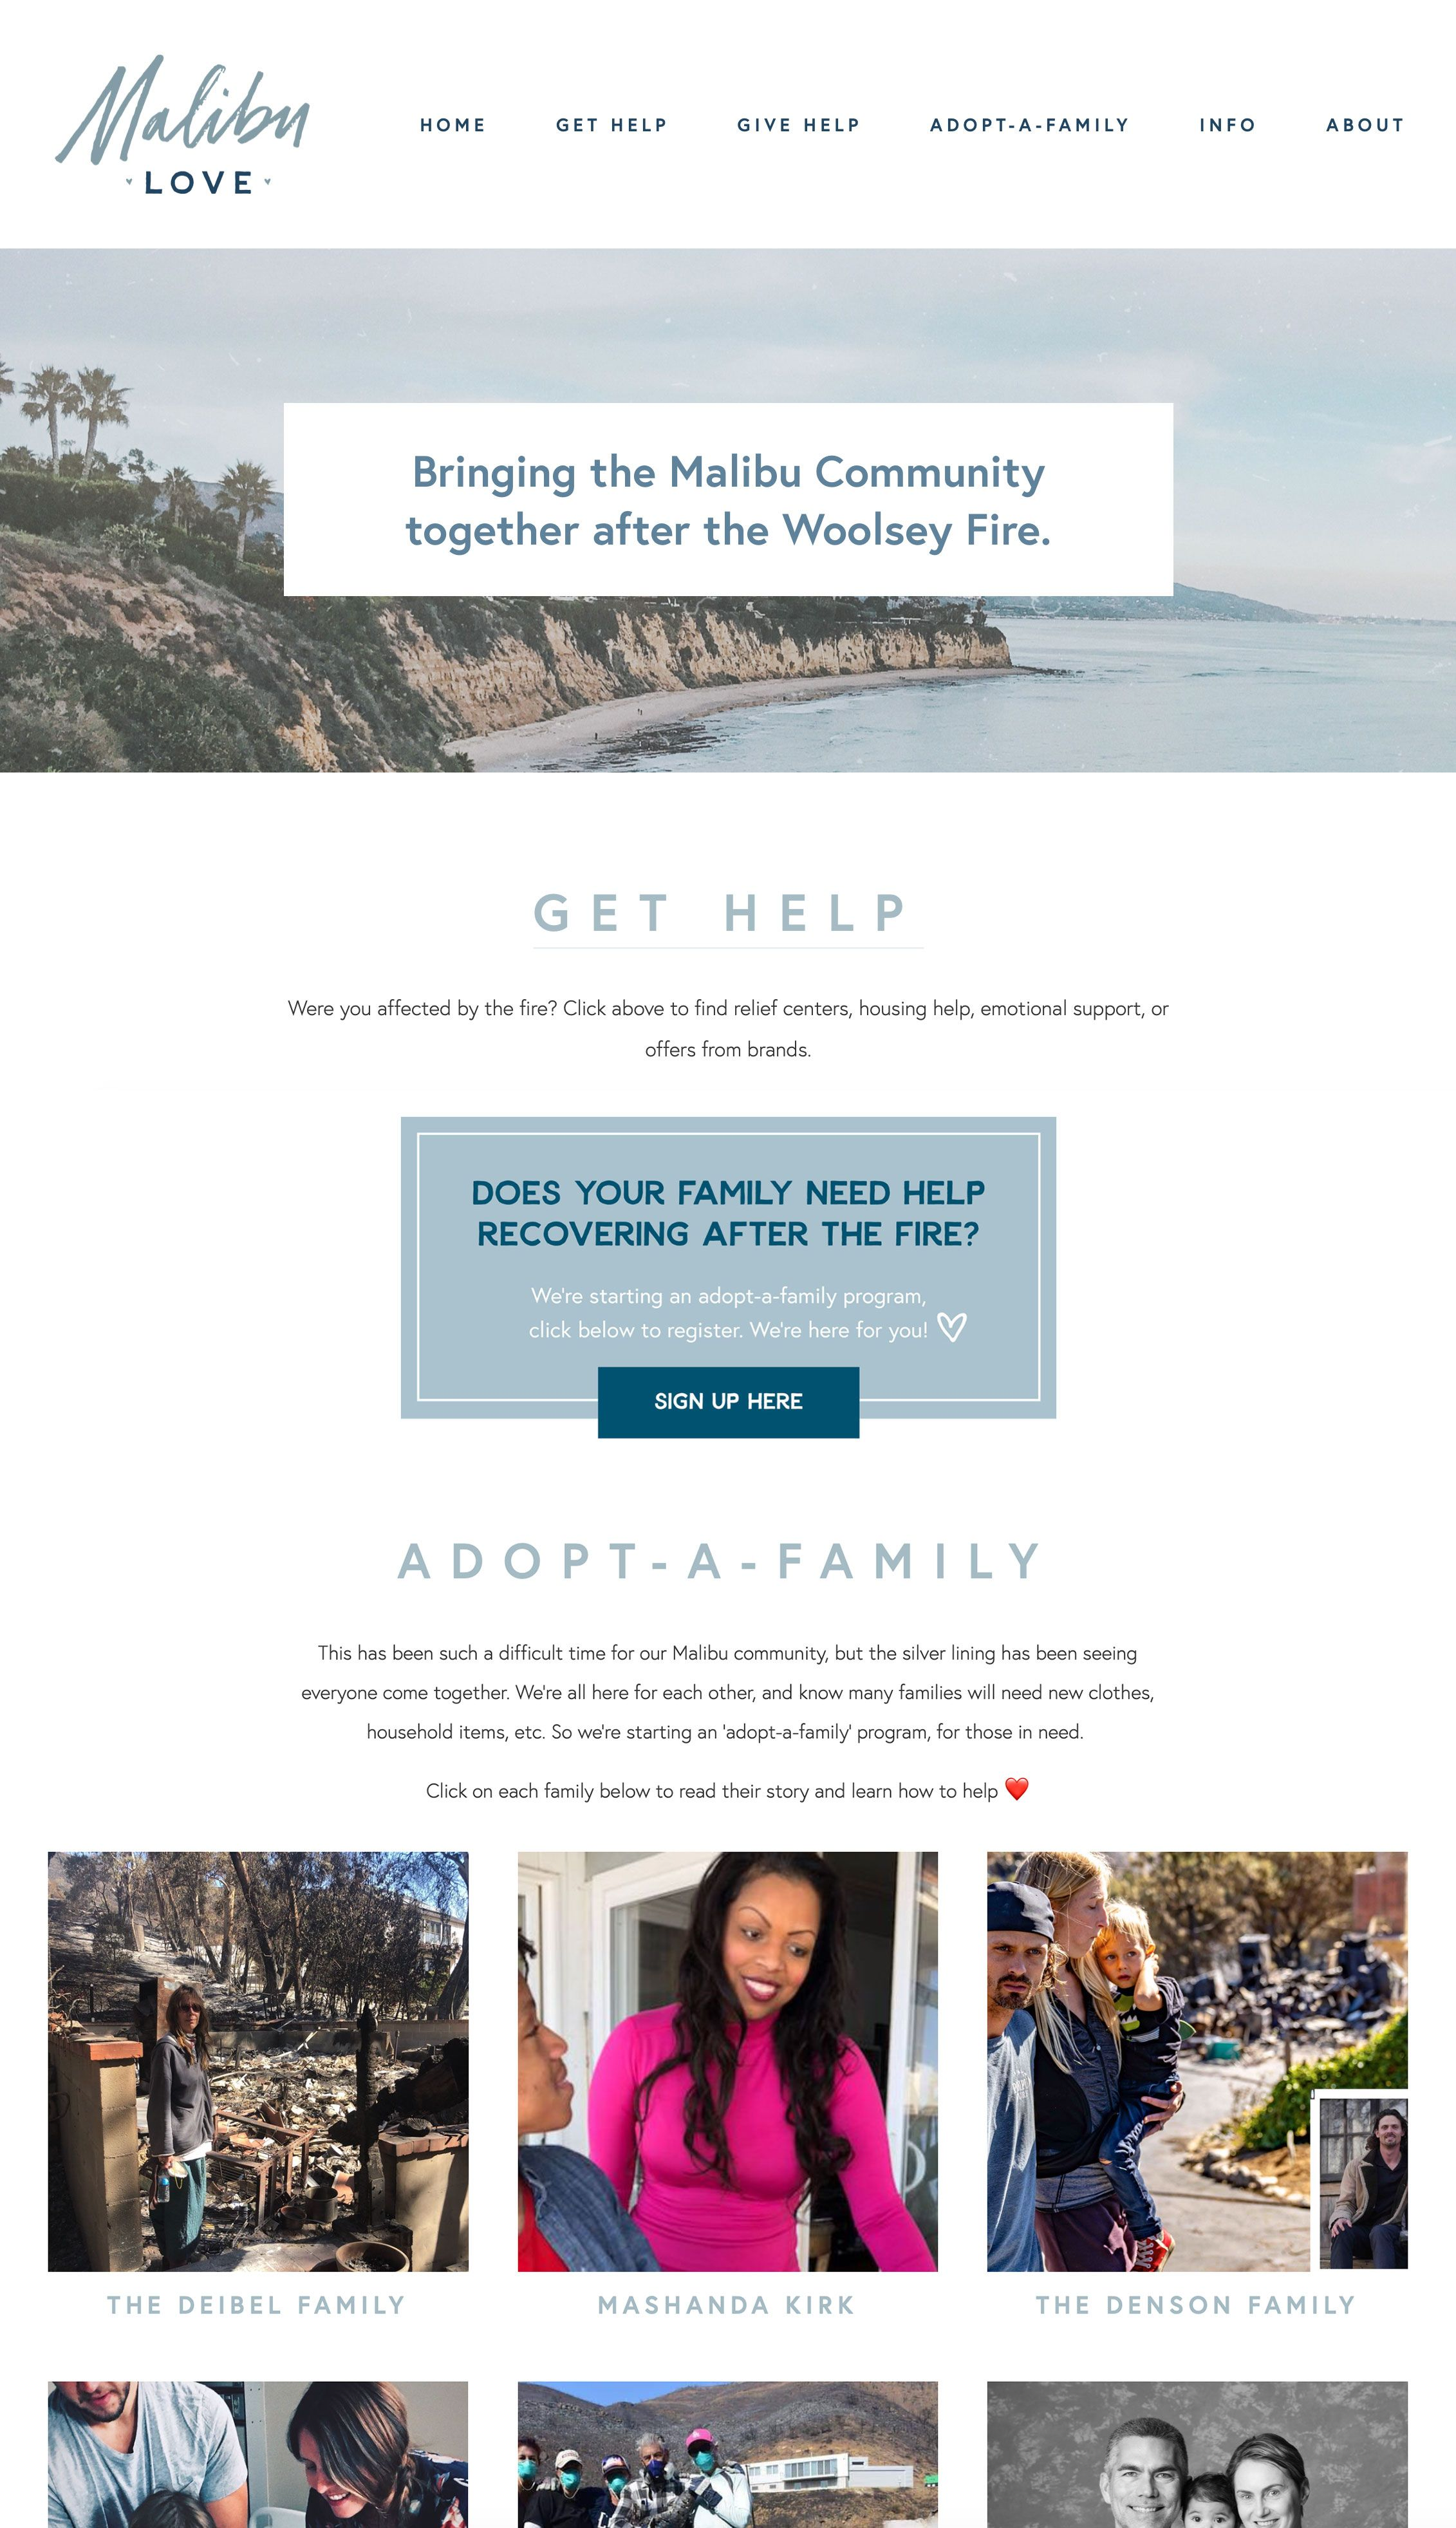 Malibu Love Branding Web Design Squarespace Graphic Design